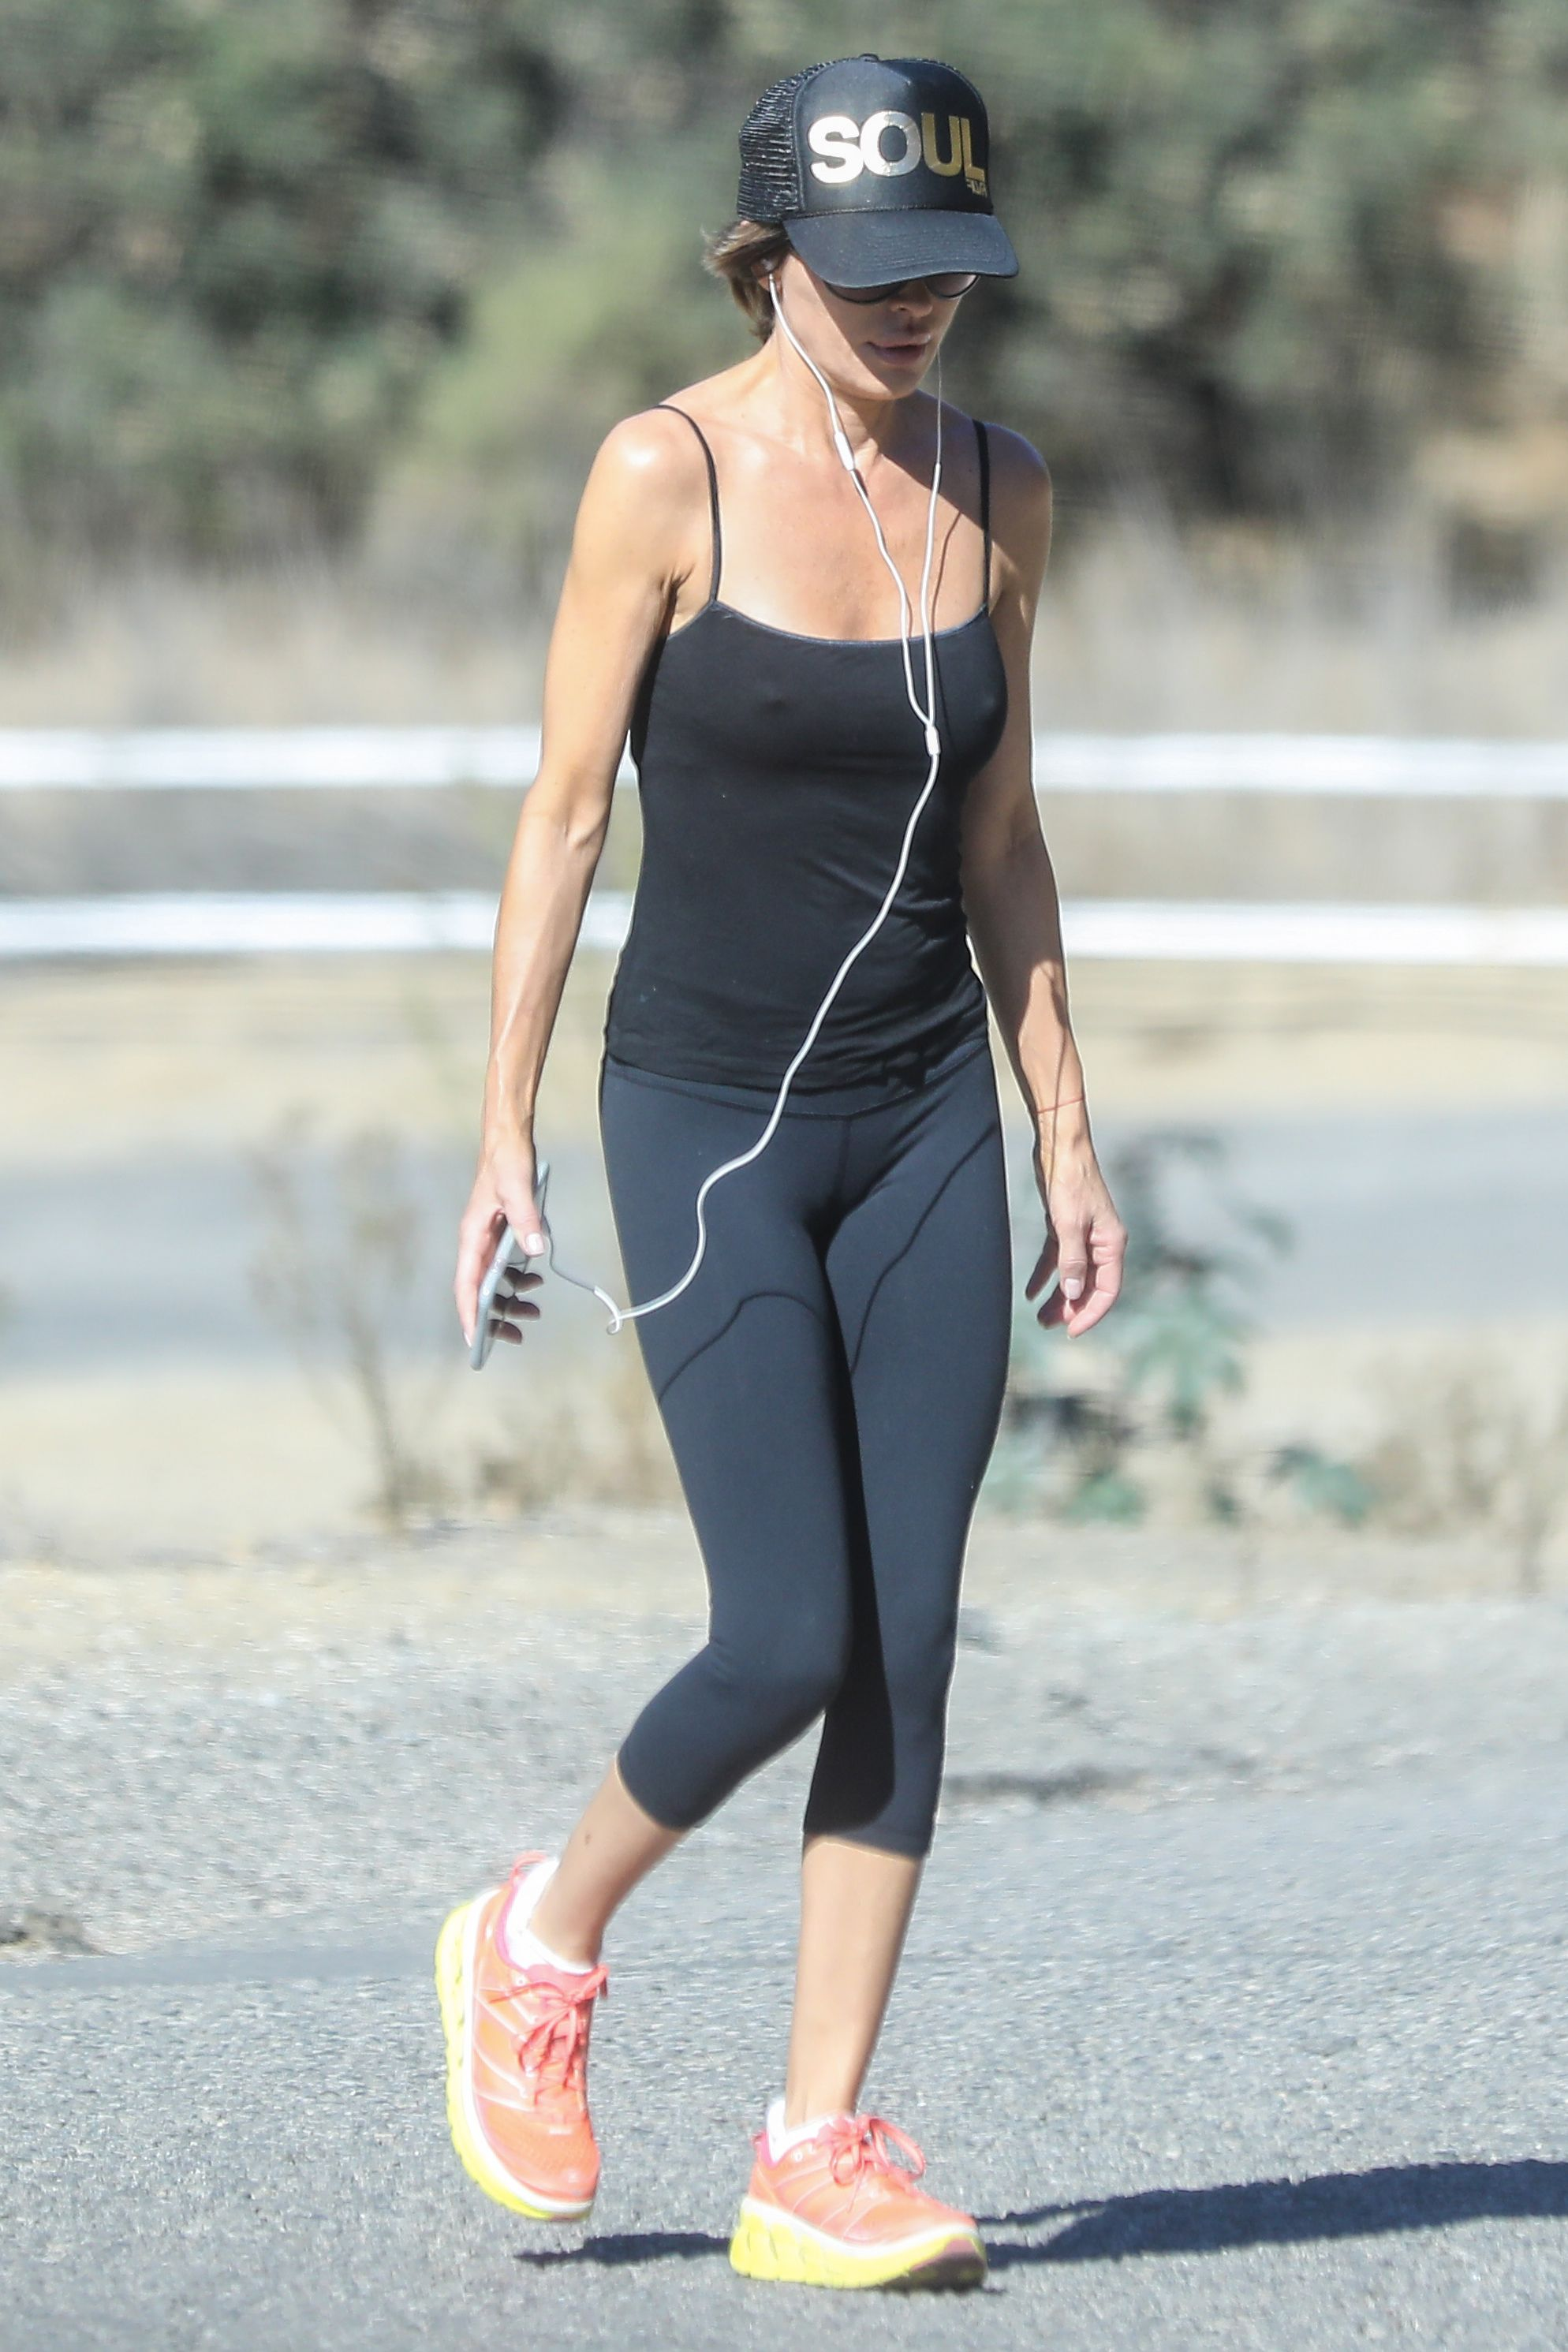 Pokies Pics Of Lisa Rinna